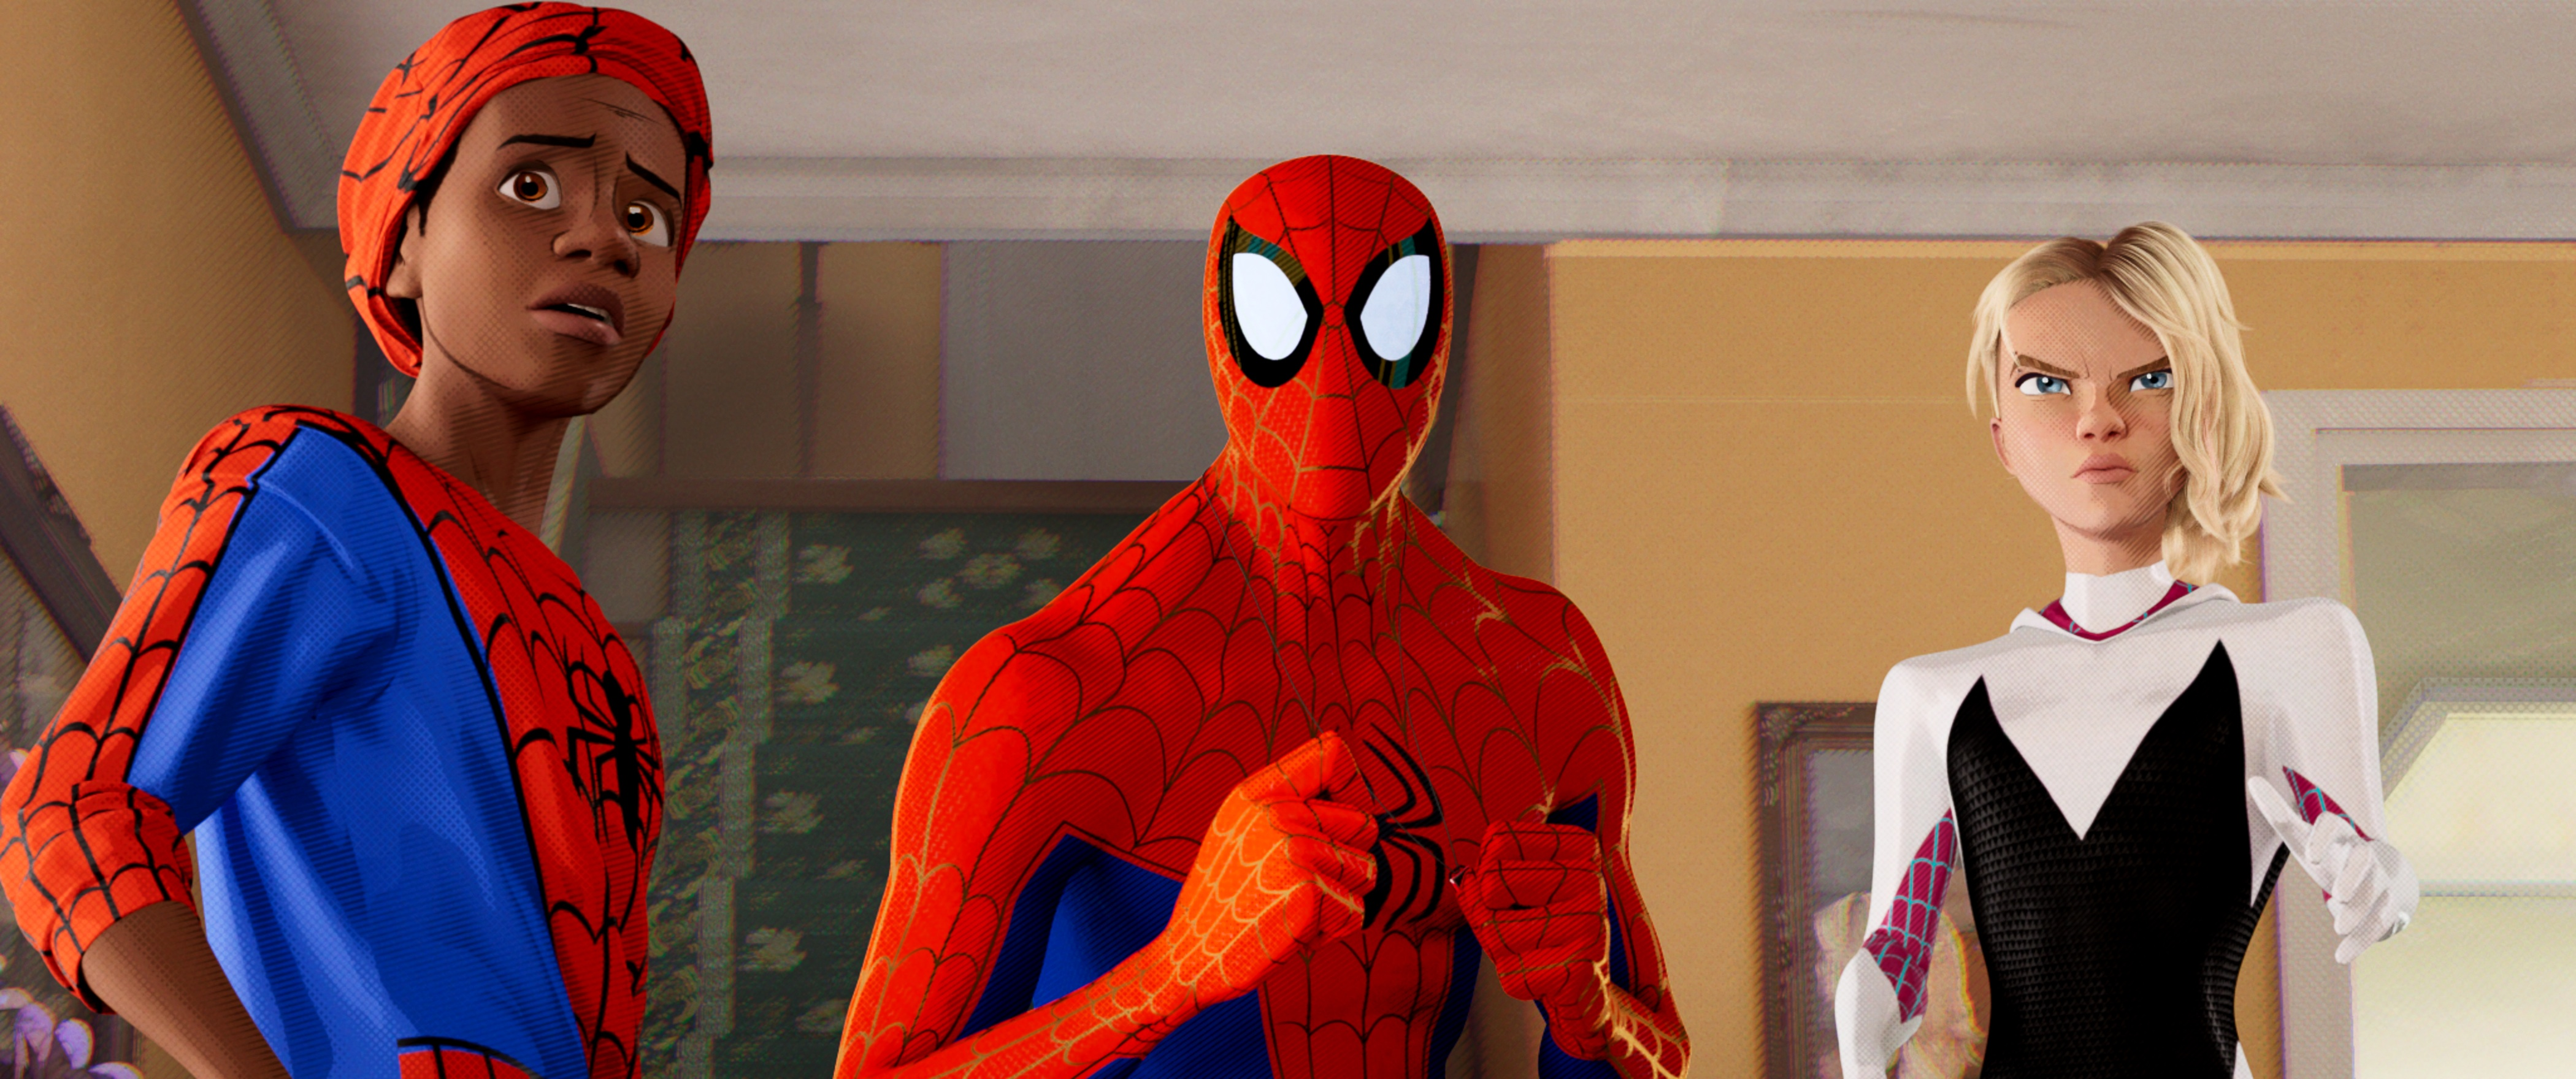 What Latino Critics Are Saying About 'Spider-Man: Into the Spider-Verse'